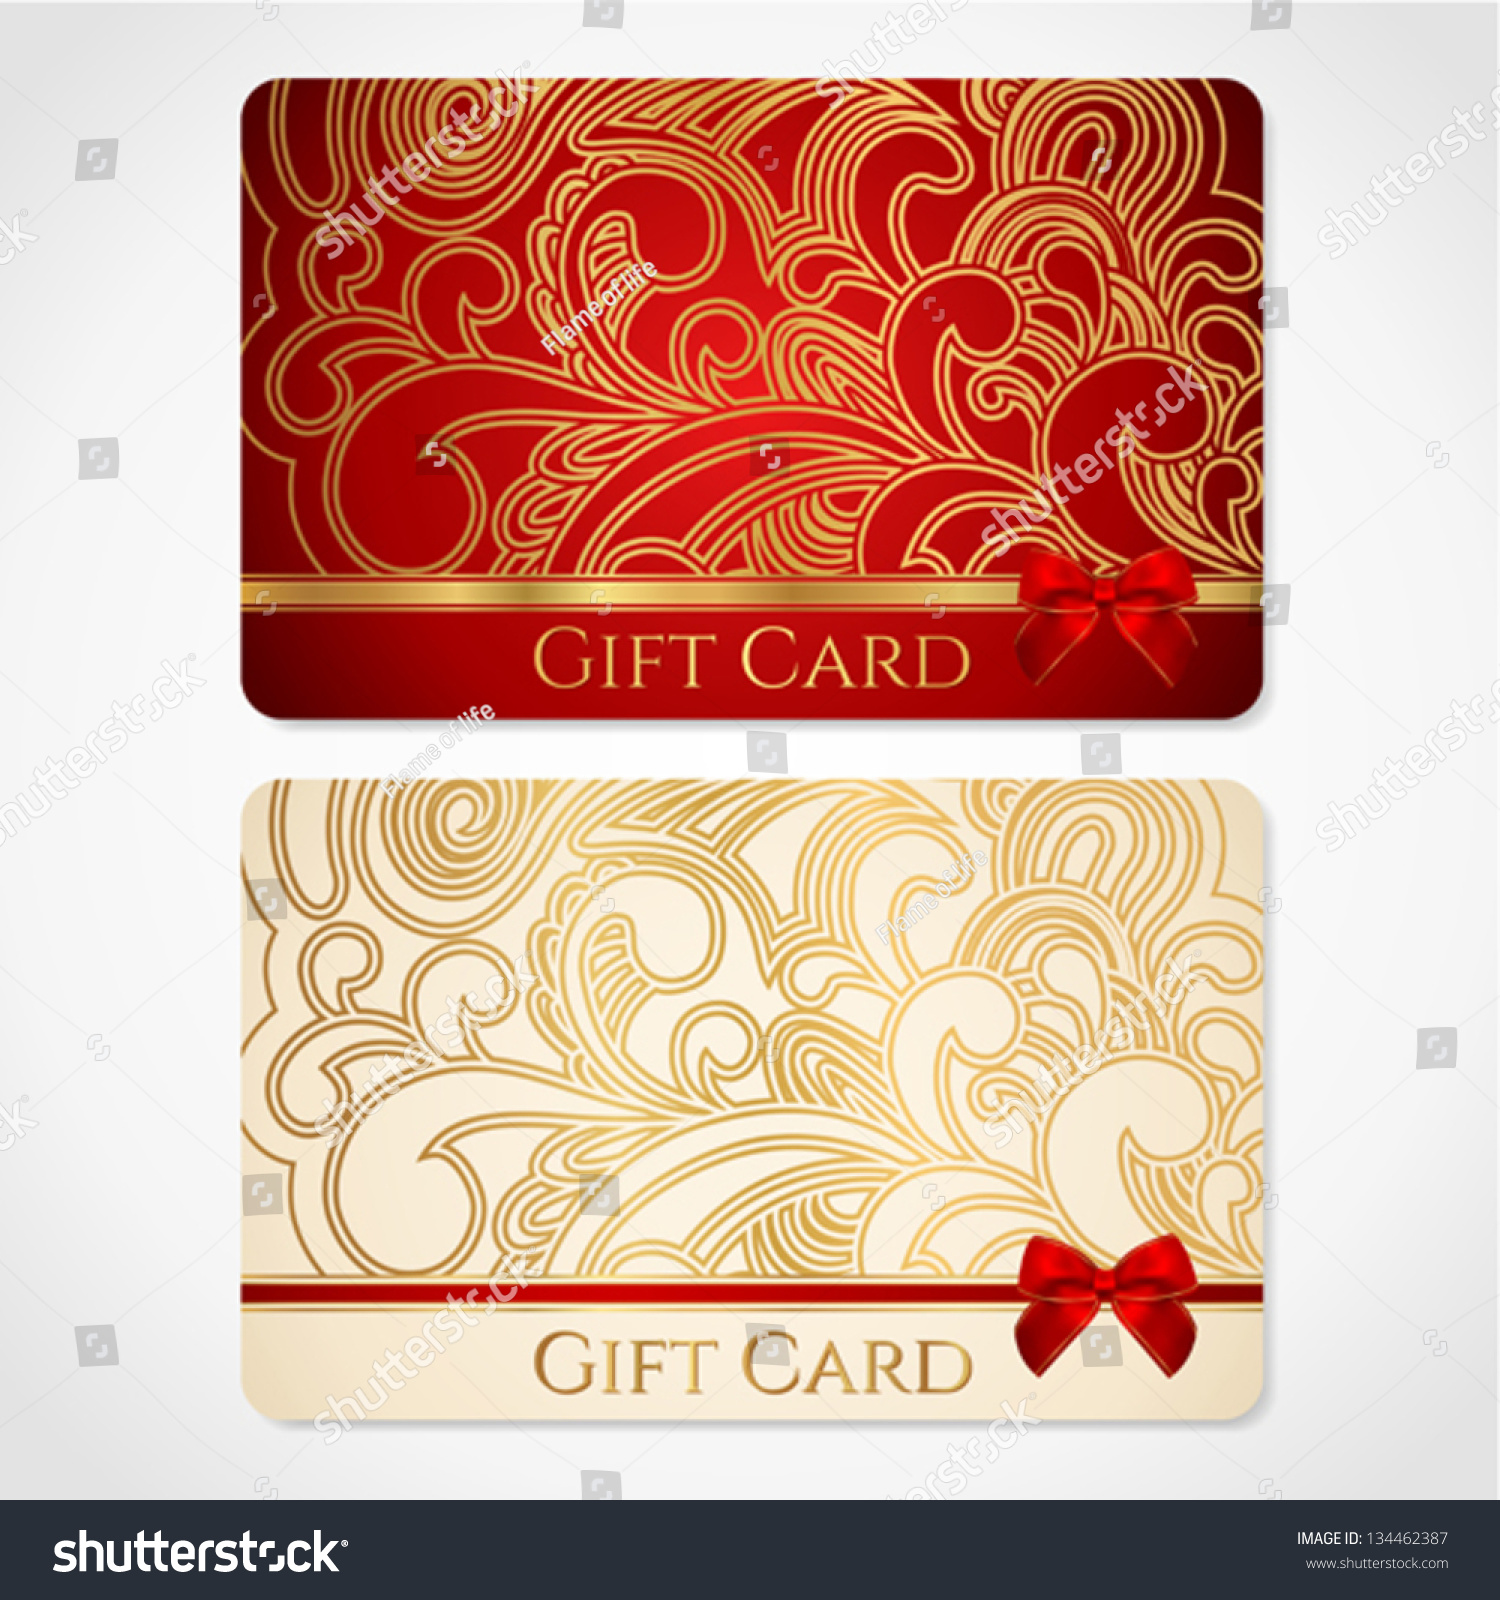 Design of discount card - Red And Gold Gift Card Discount Card With Floral Pattern And Red Bow